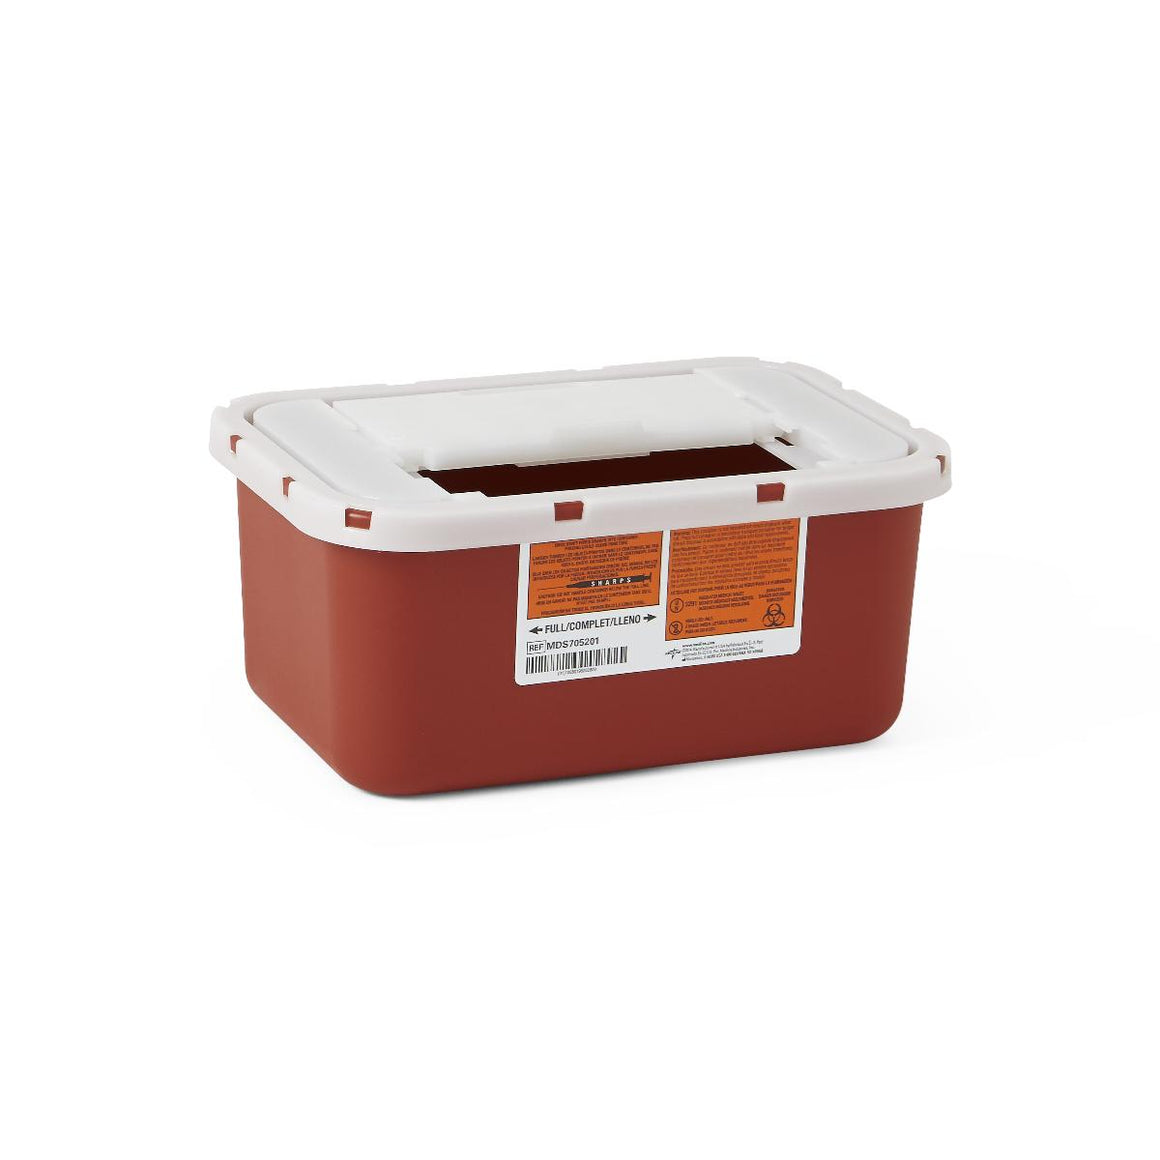 Multipurpose Sharps Containers,Red,4.000 QT, Each